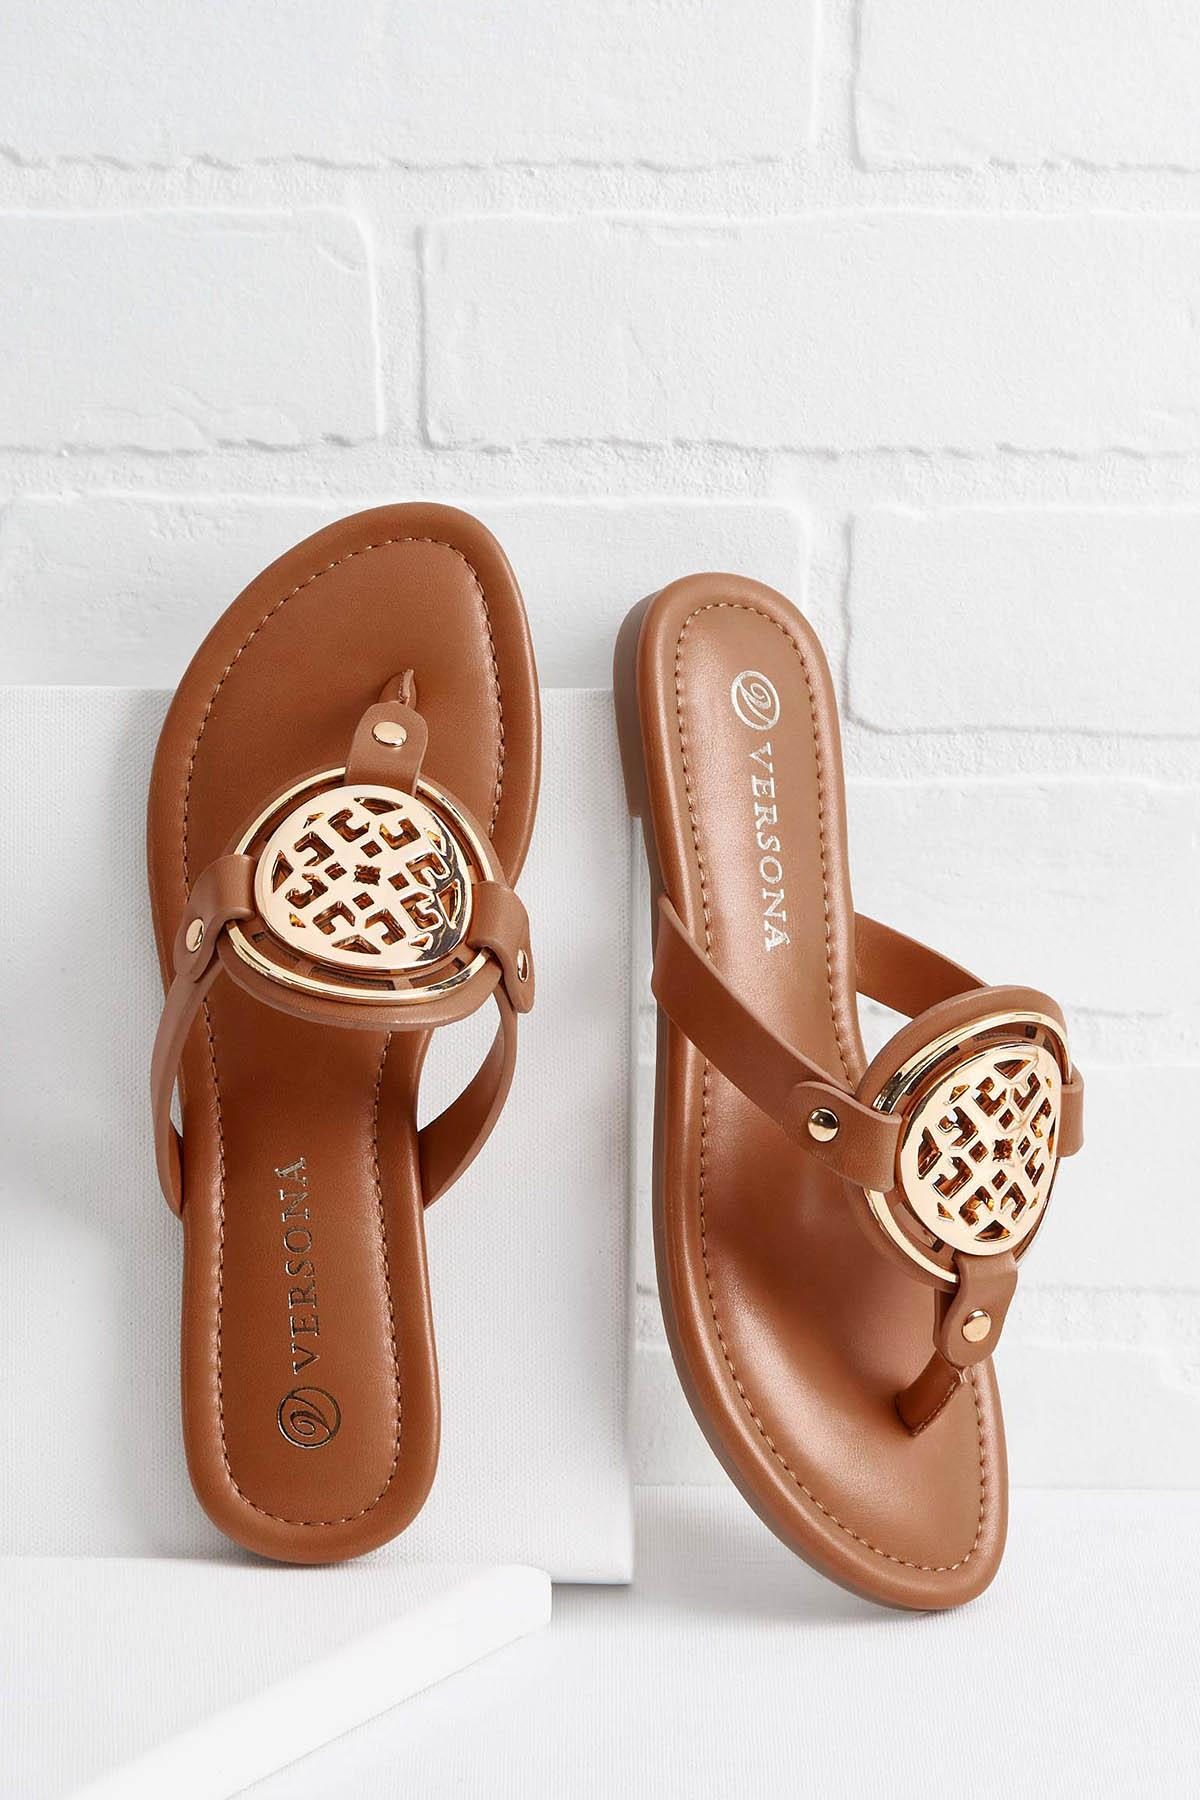 Vacation Vibes Sandals